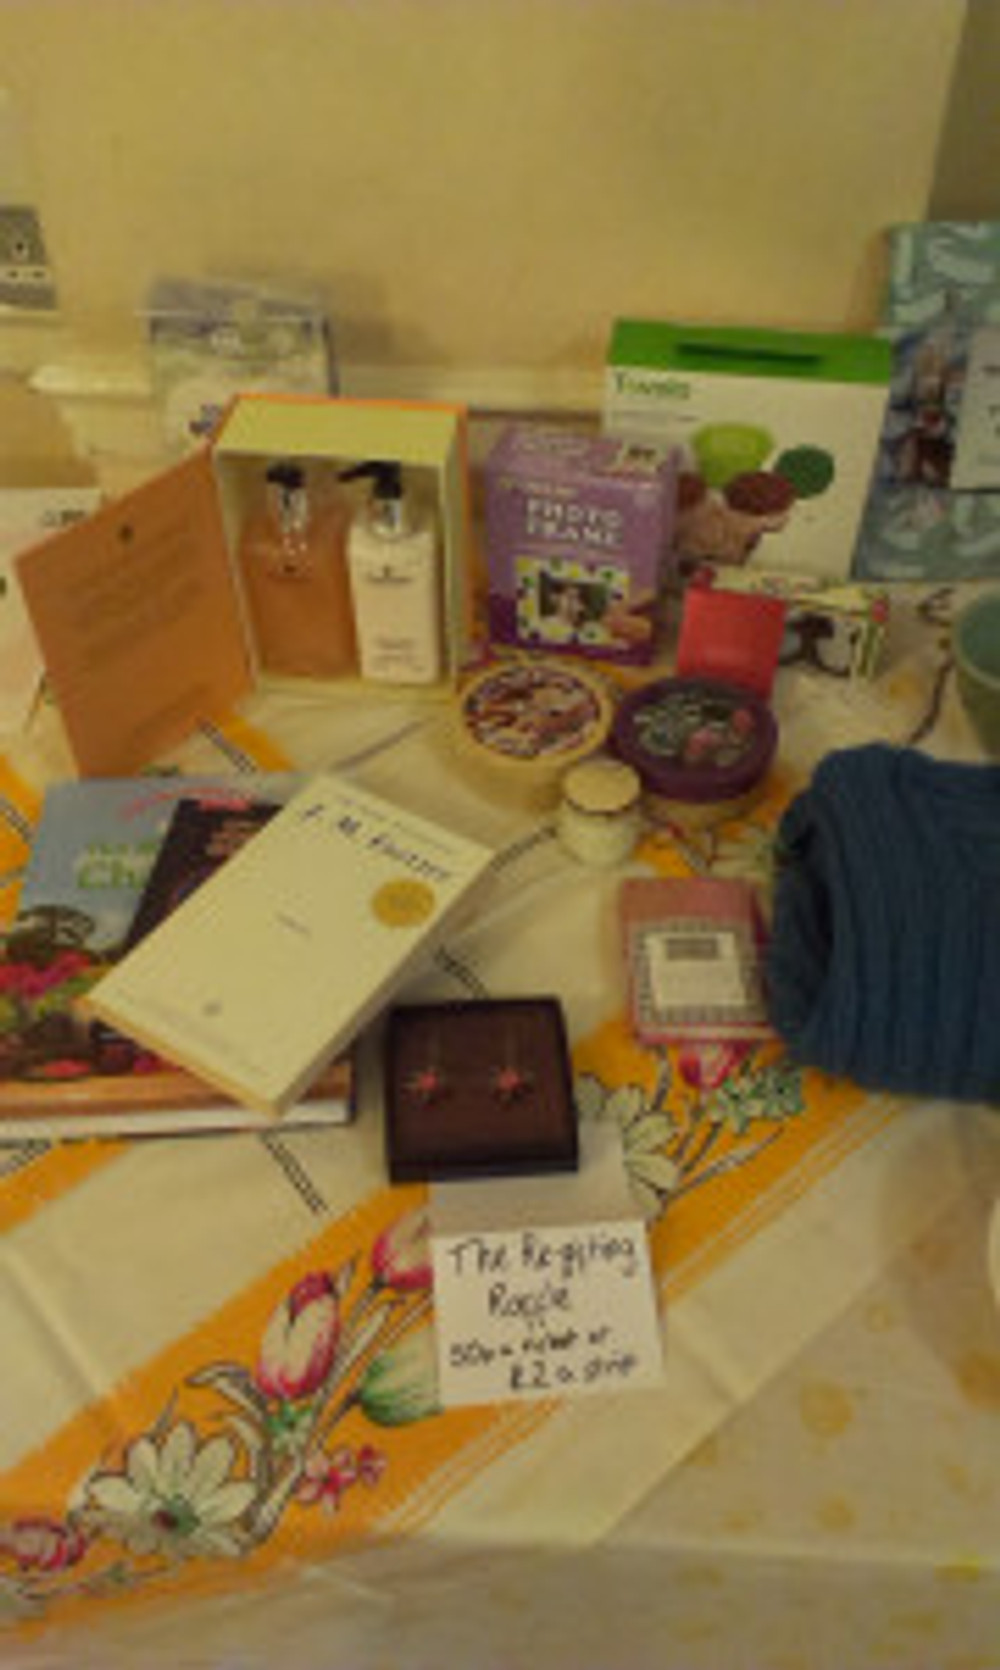 The re-gifting raffle